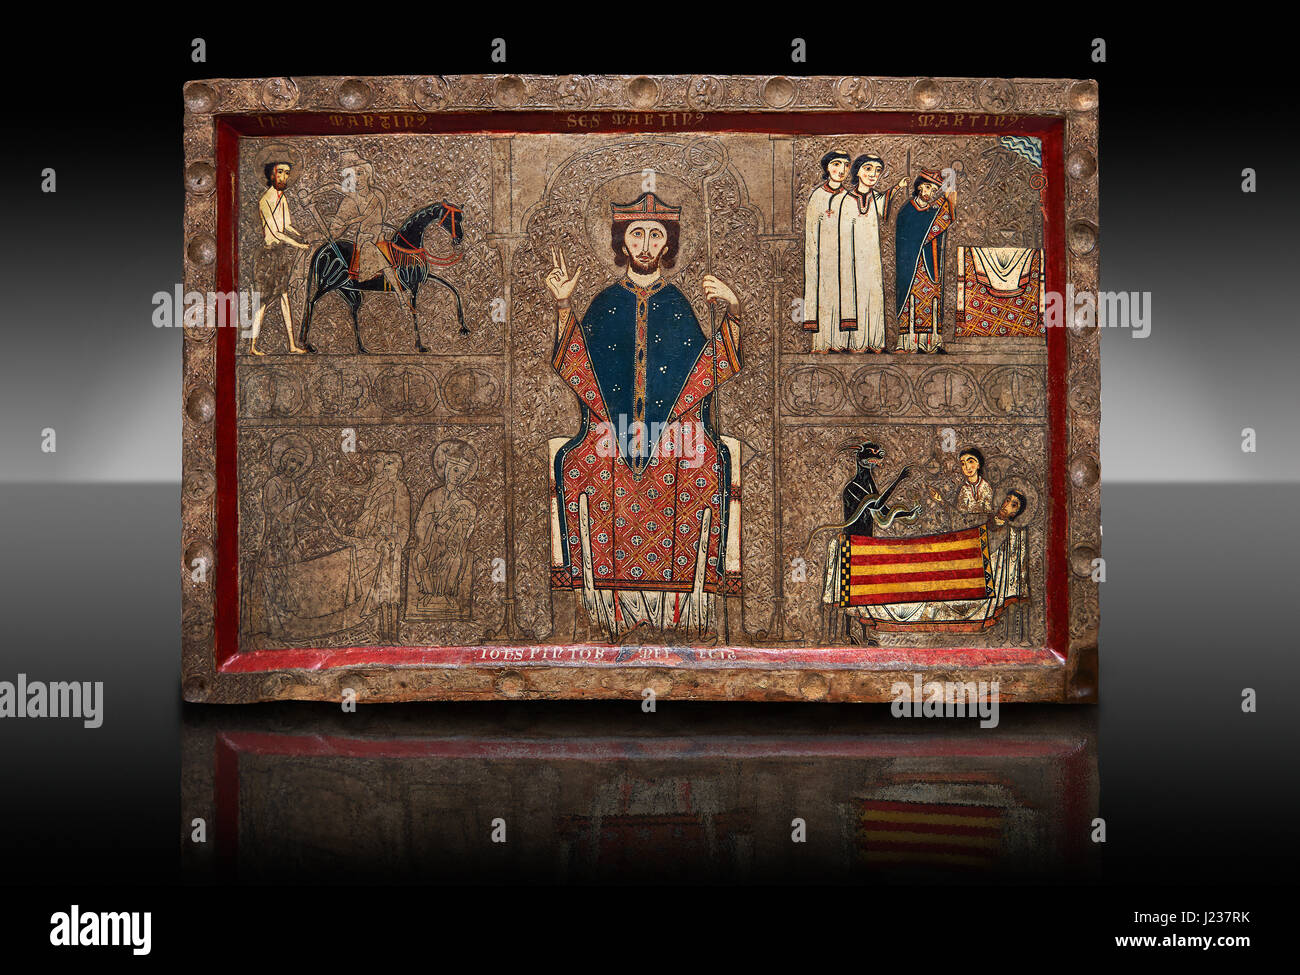 Romanesque painted Gia altar front, 13th century from the church of Santa Maria Gia and Xia, High Ribagorca, Huesca, - Stock Image